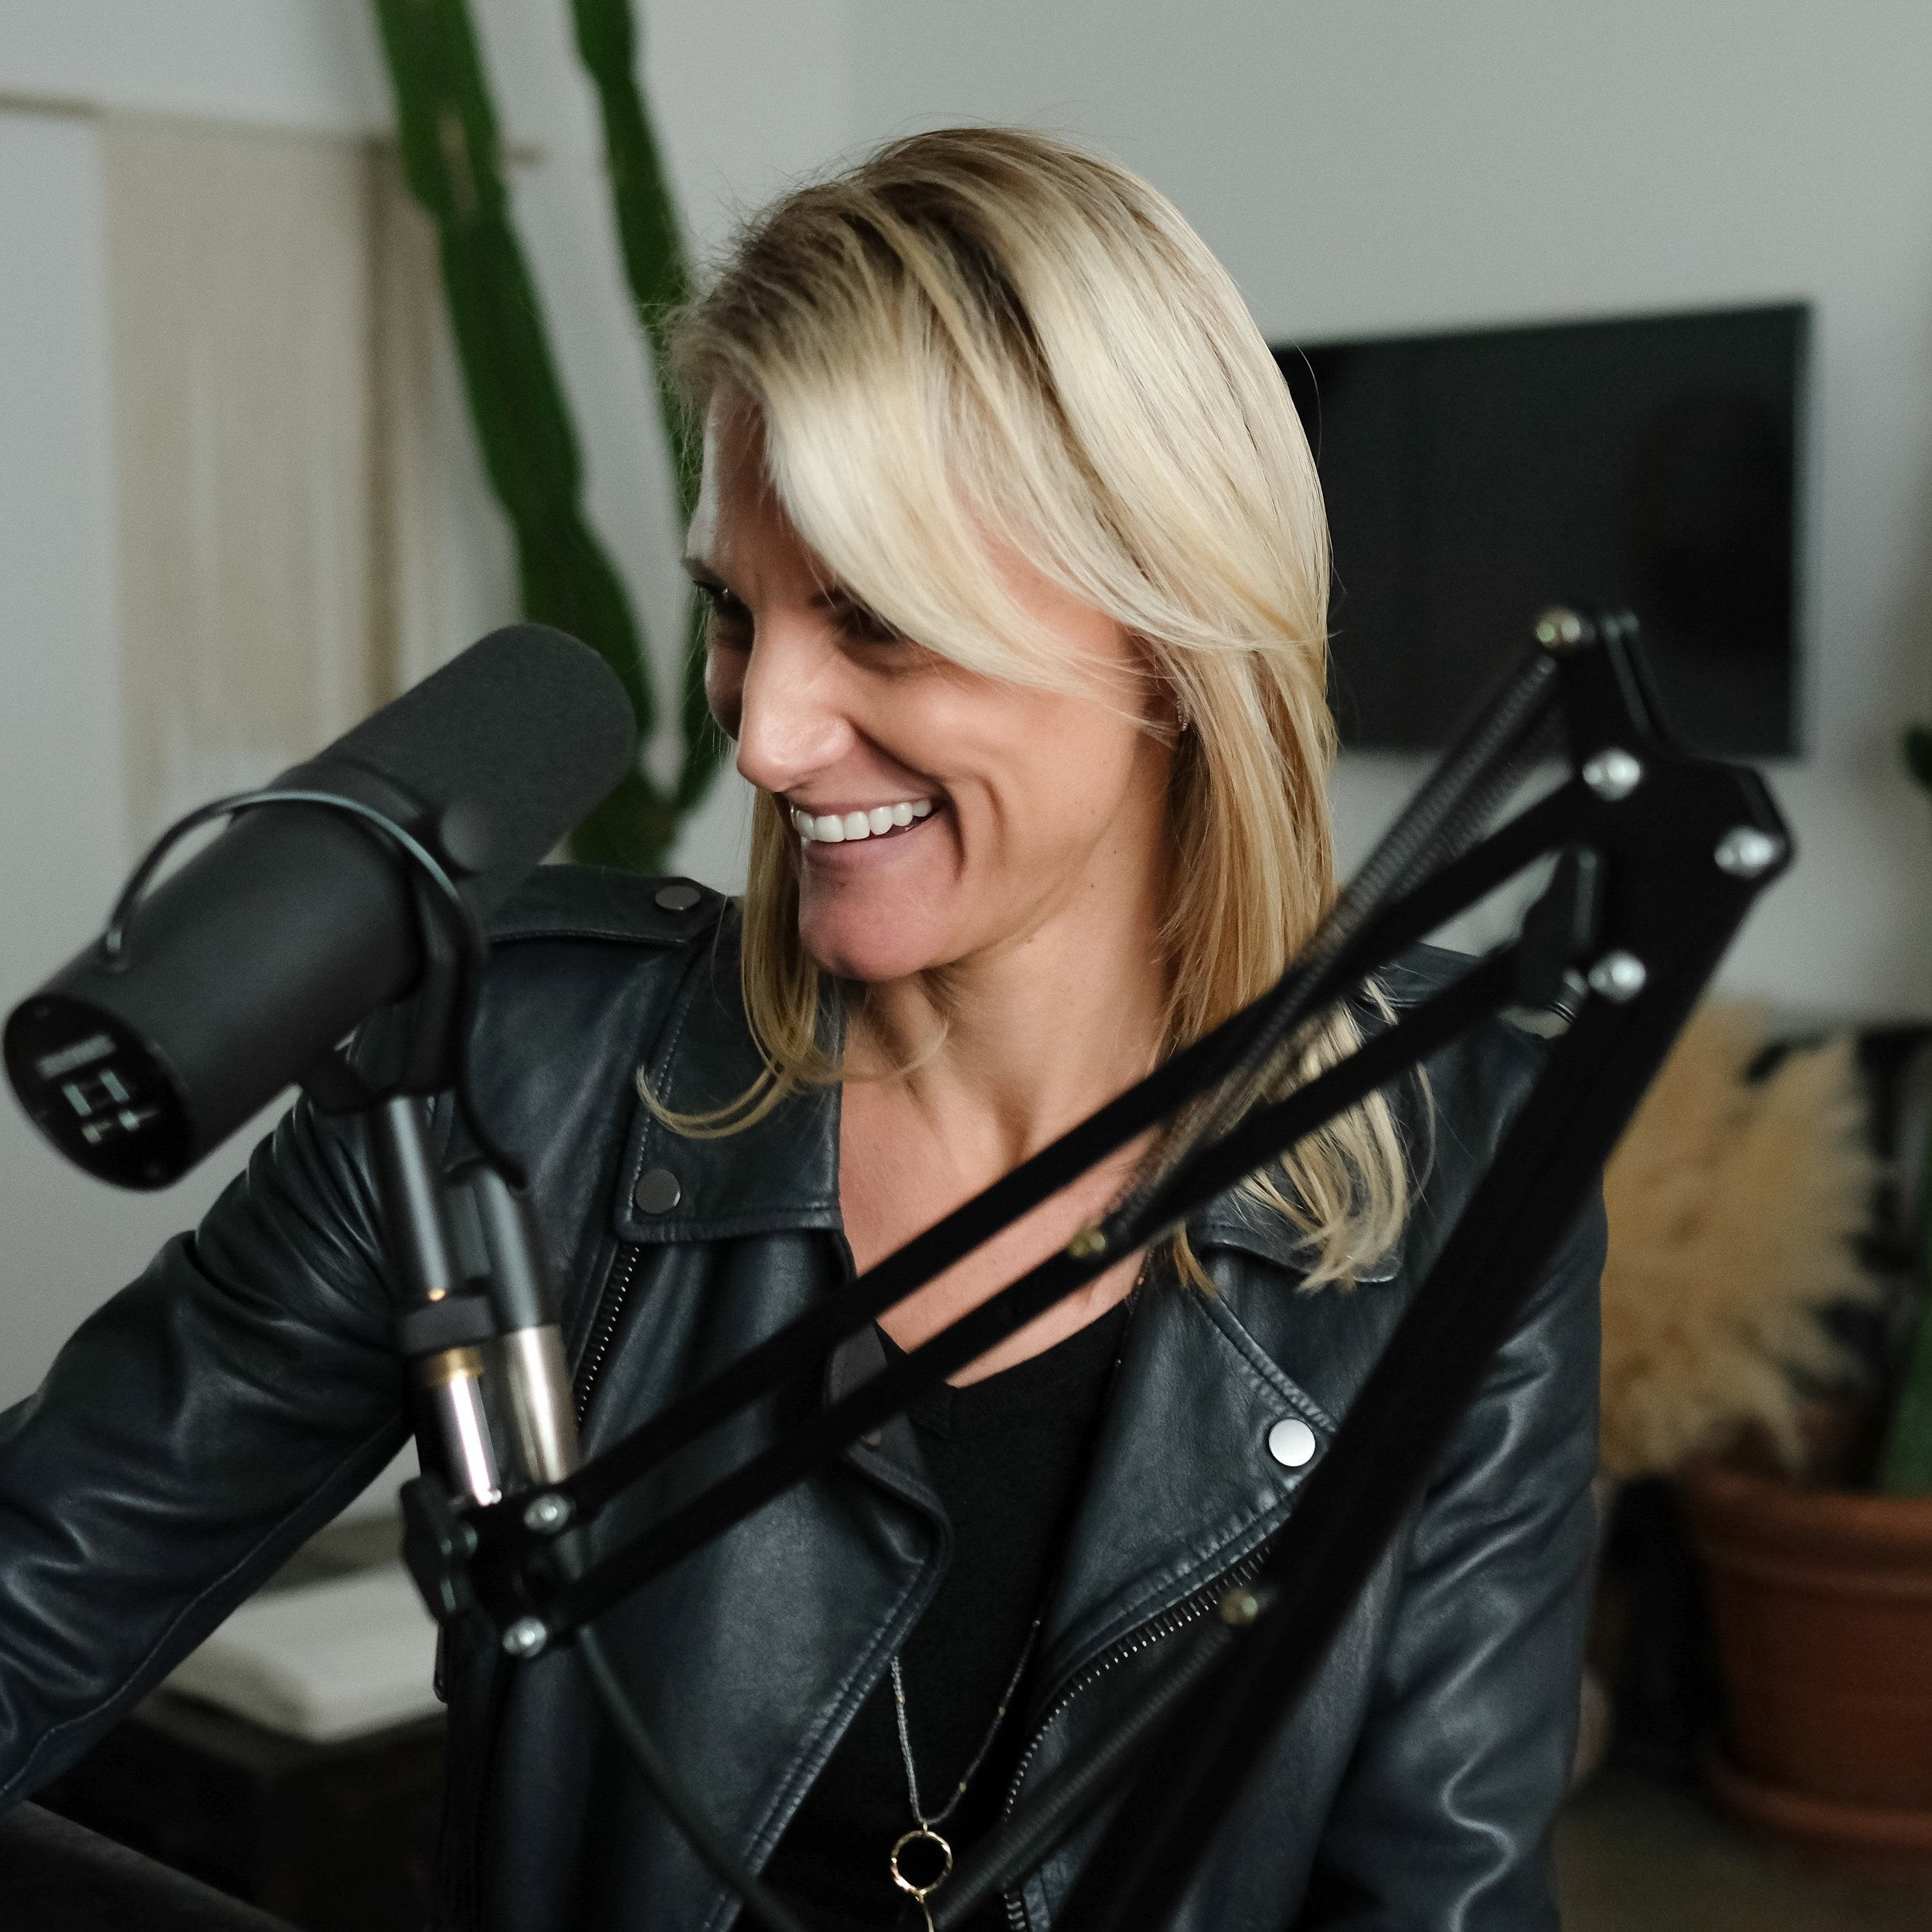 Podcast Host/Celebrity Vocal Coach: Valerie Morehouse